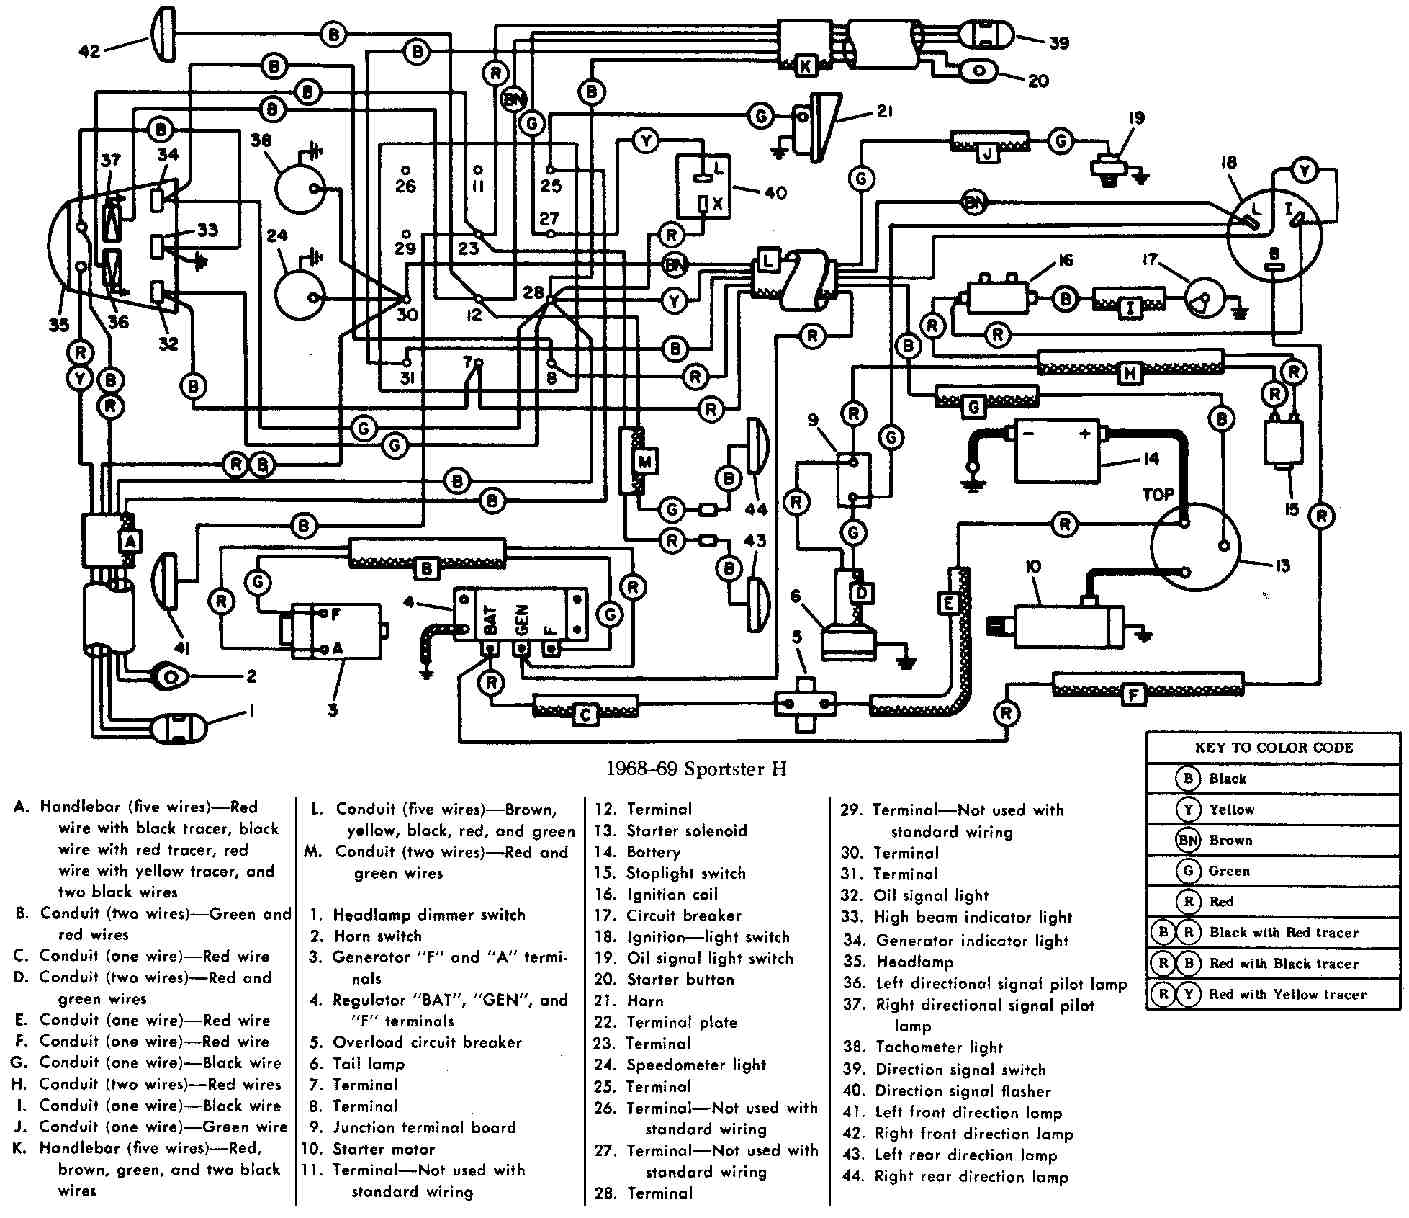 Diagram 2013 Sportster Wiring Diagram Schematic Full Version Hd Quality Diagram Schematic Farmingdiagrams Media90 It